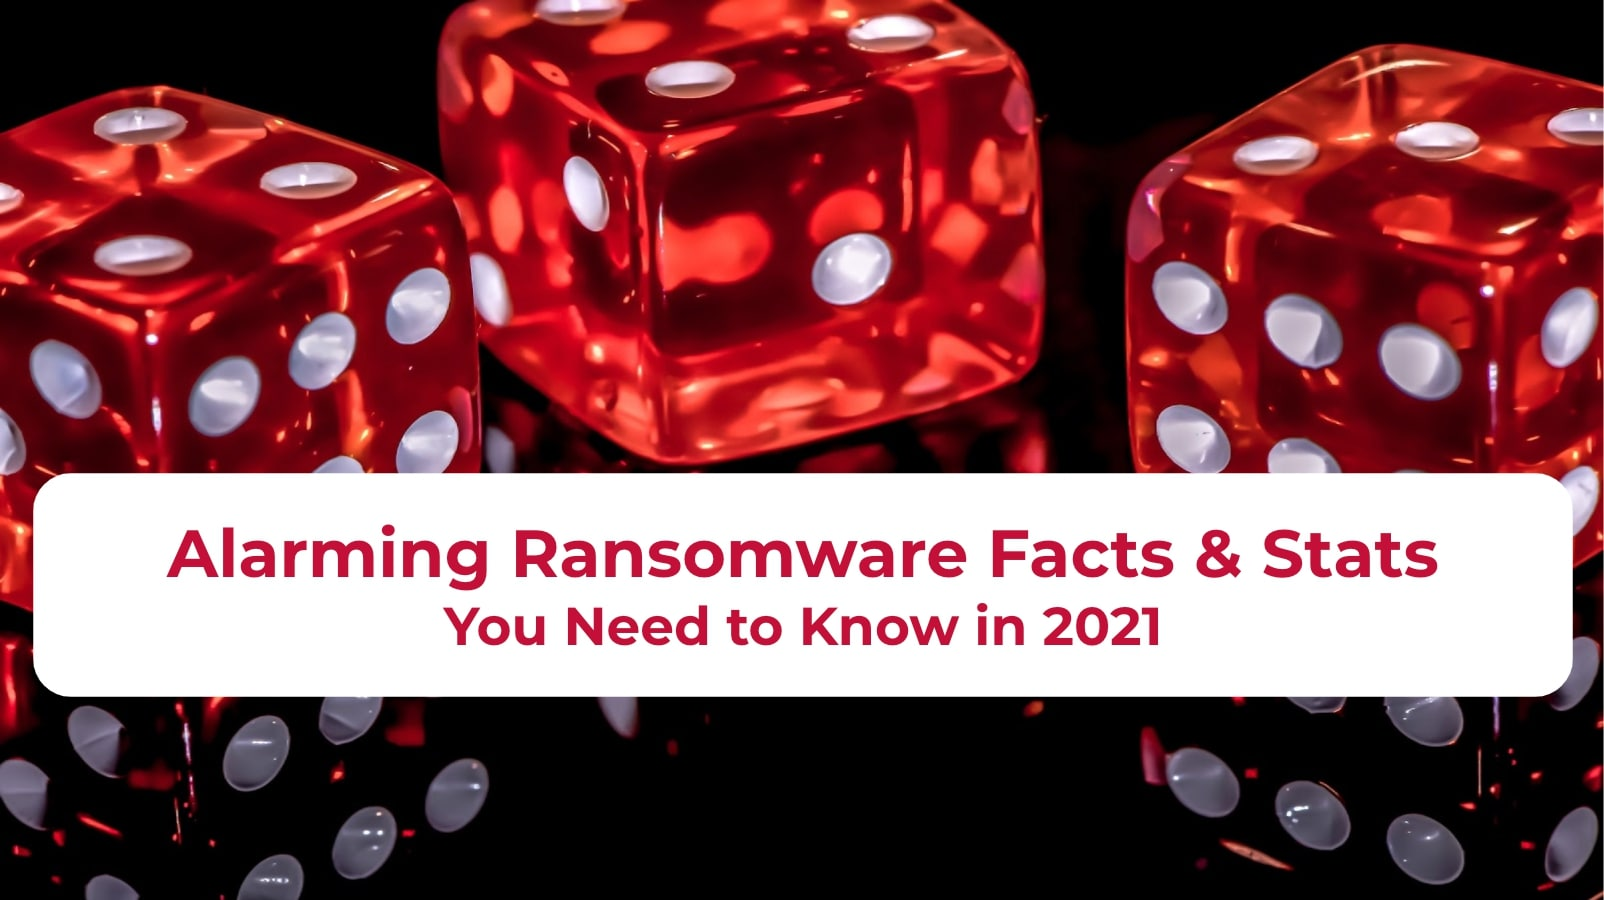 Alarming Ransomware Facts & Stats You Need to Know in 2021